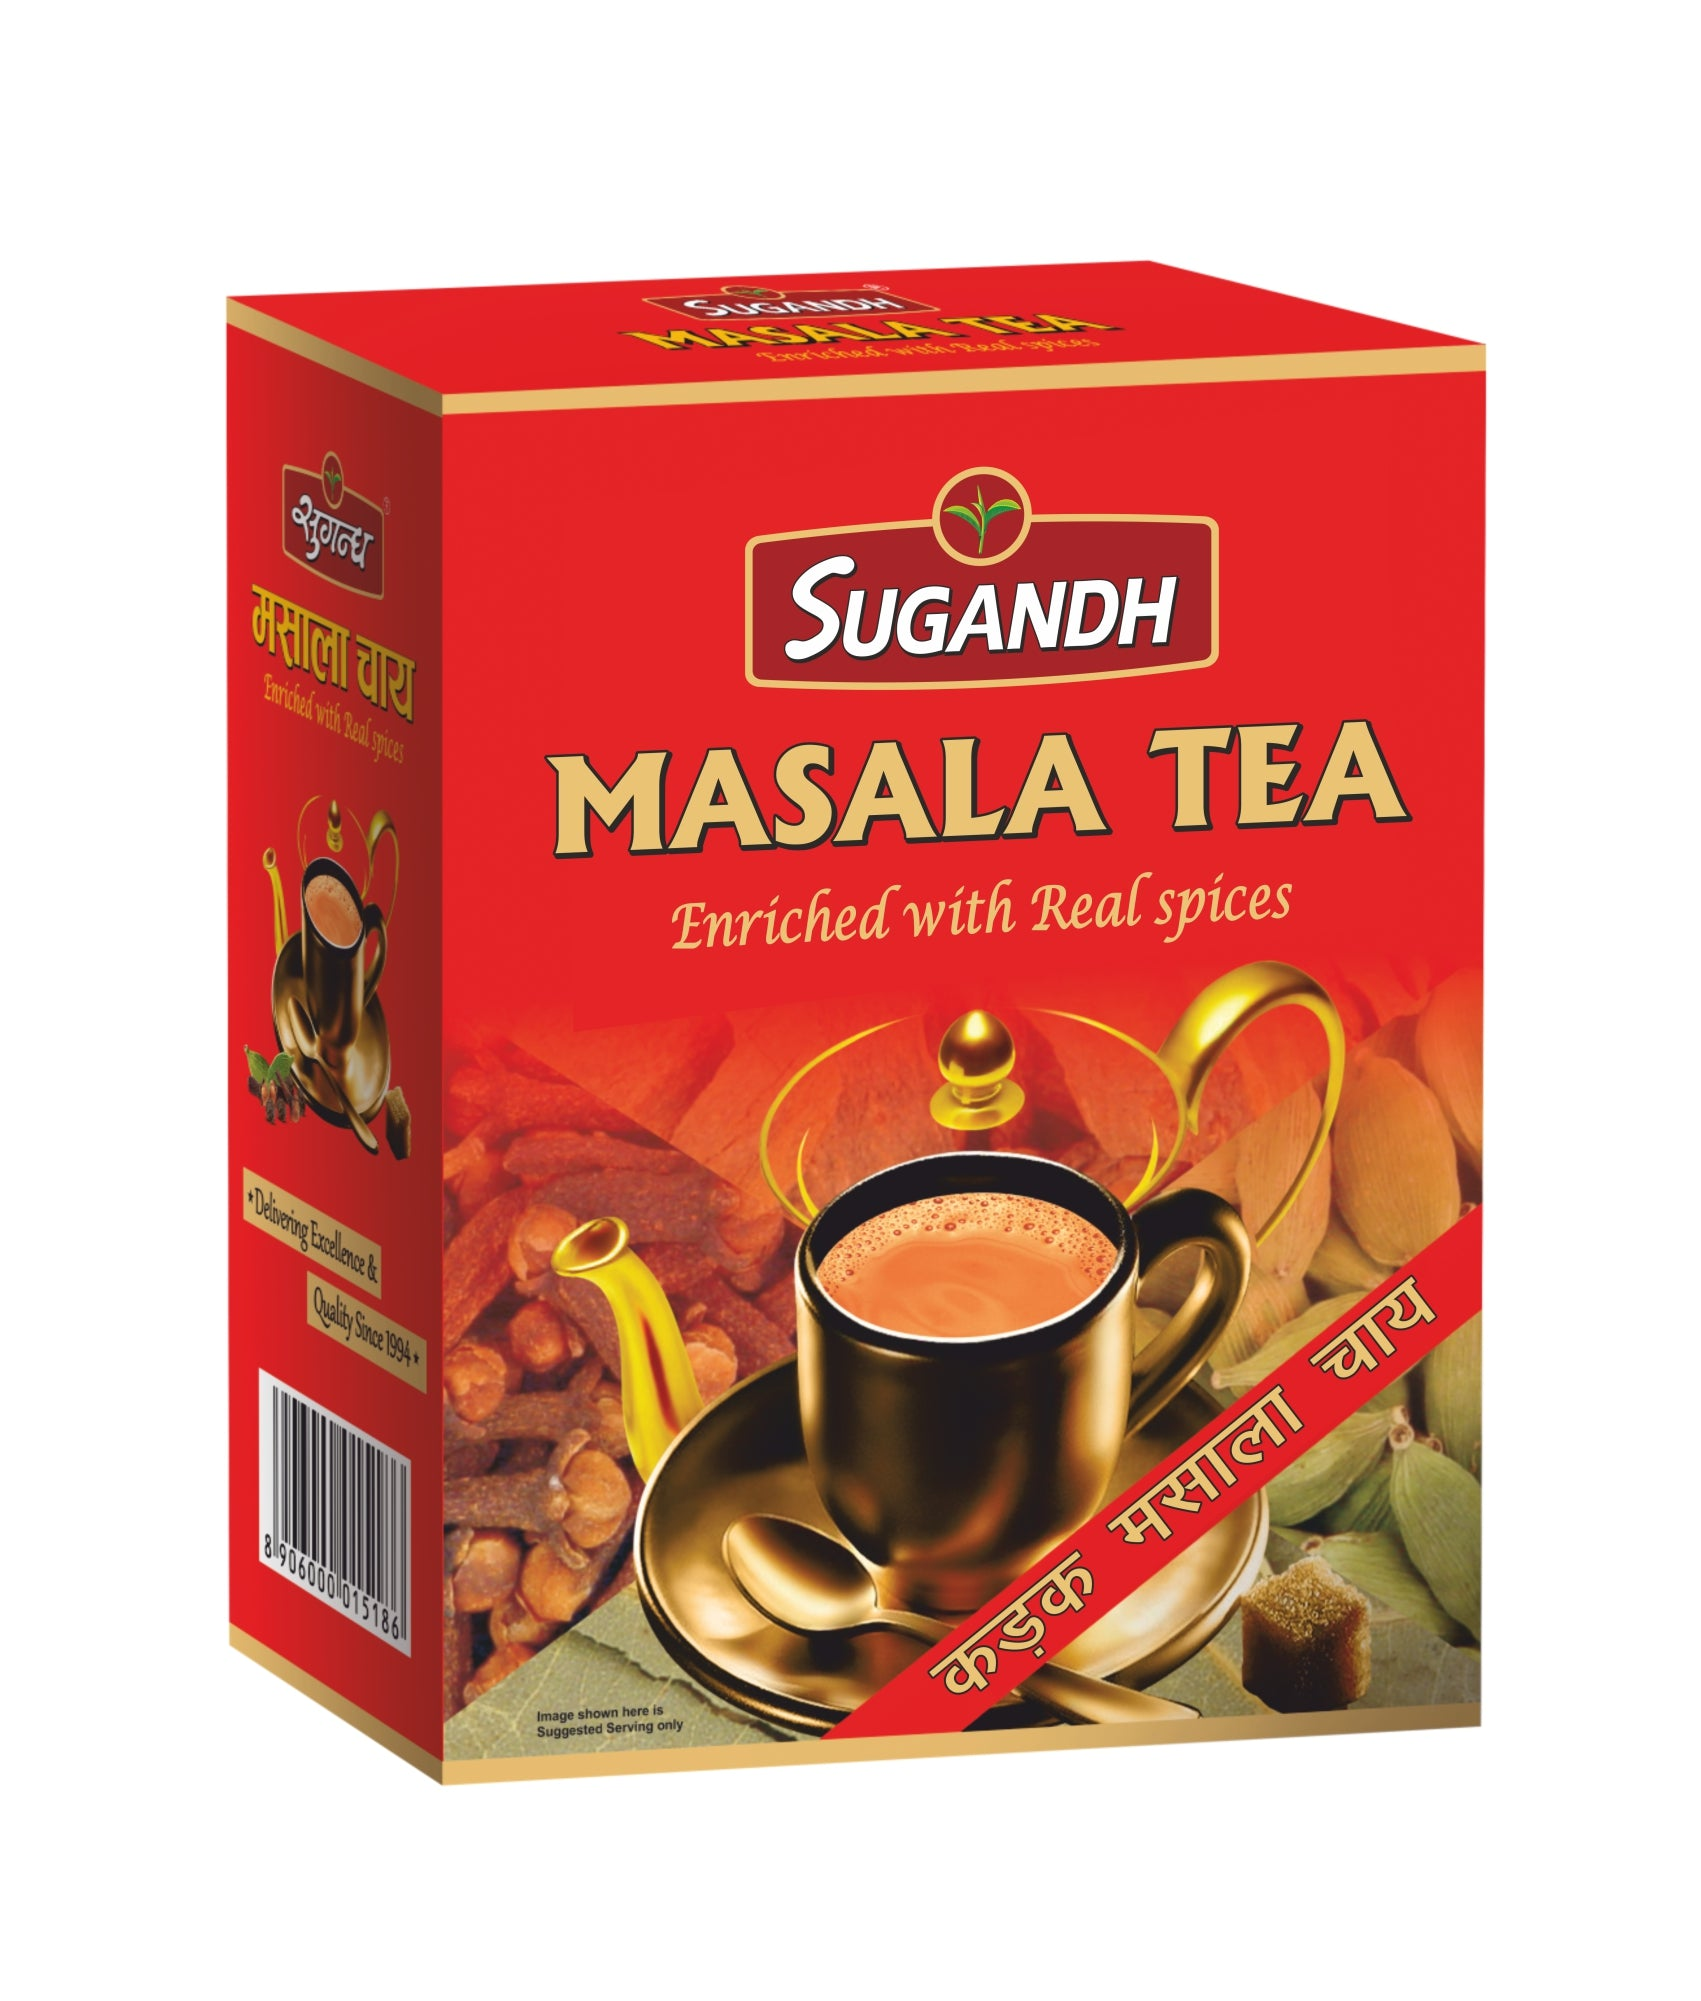 Sugandh Masala Tea 500g